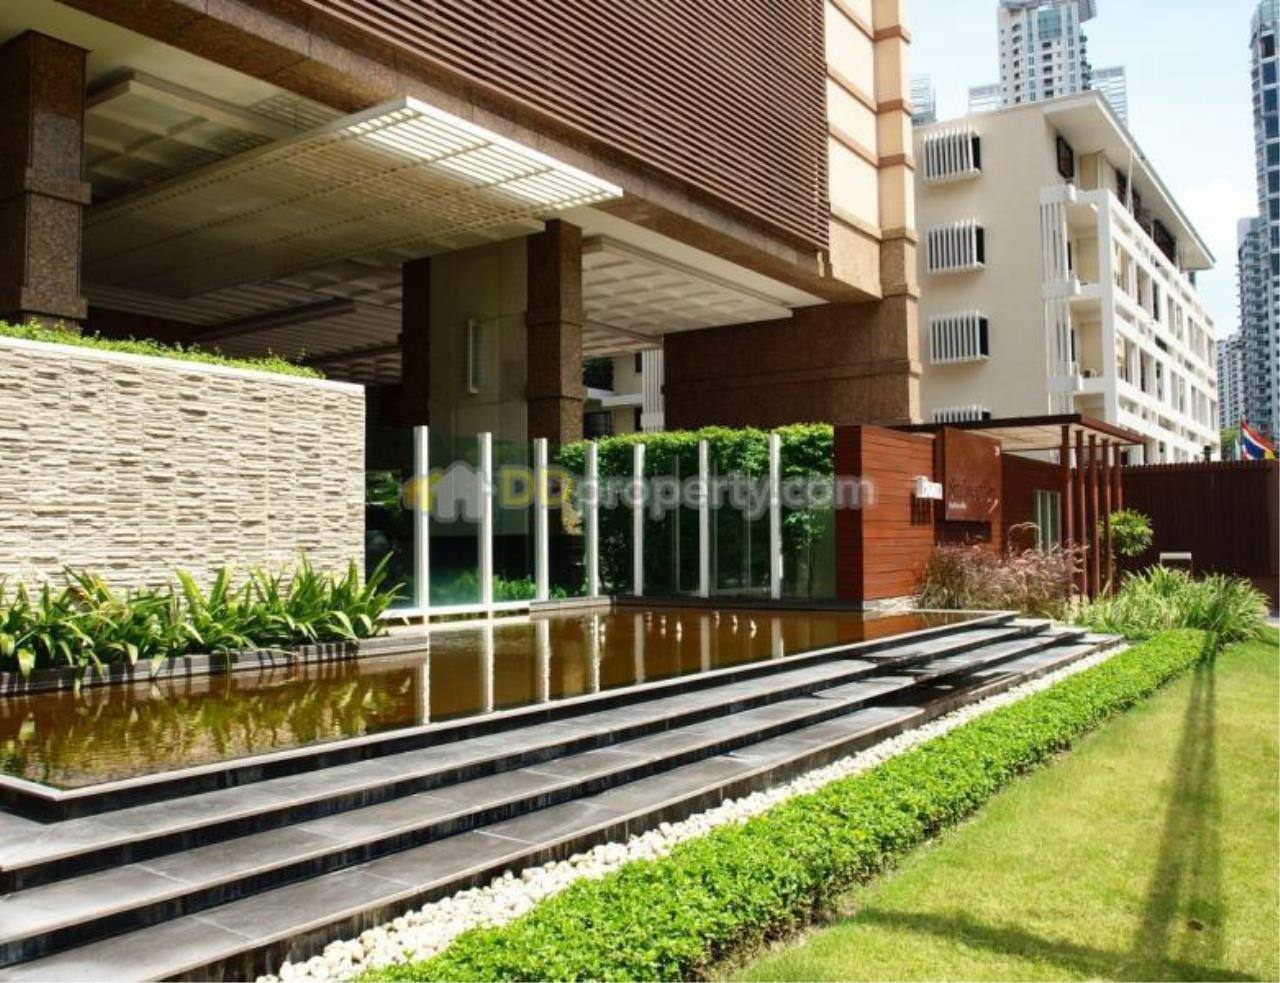 Quality Life Property Agency's Condo For Sale With Tenant 3 Bedroom At Baan Siri 24, Corner Unit Wide Area On High Floor 2